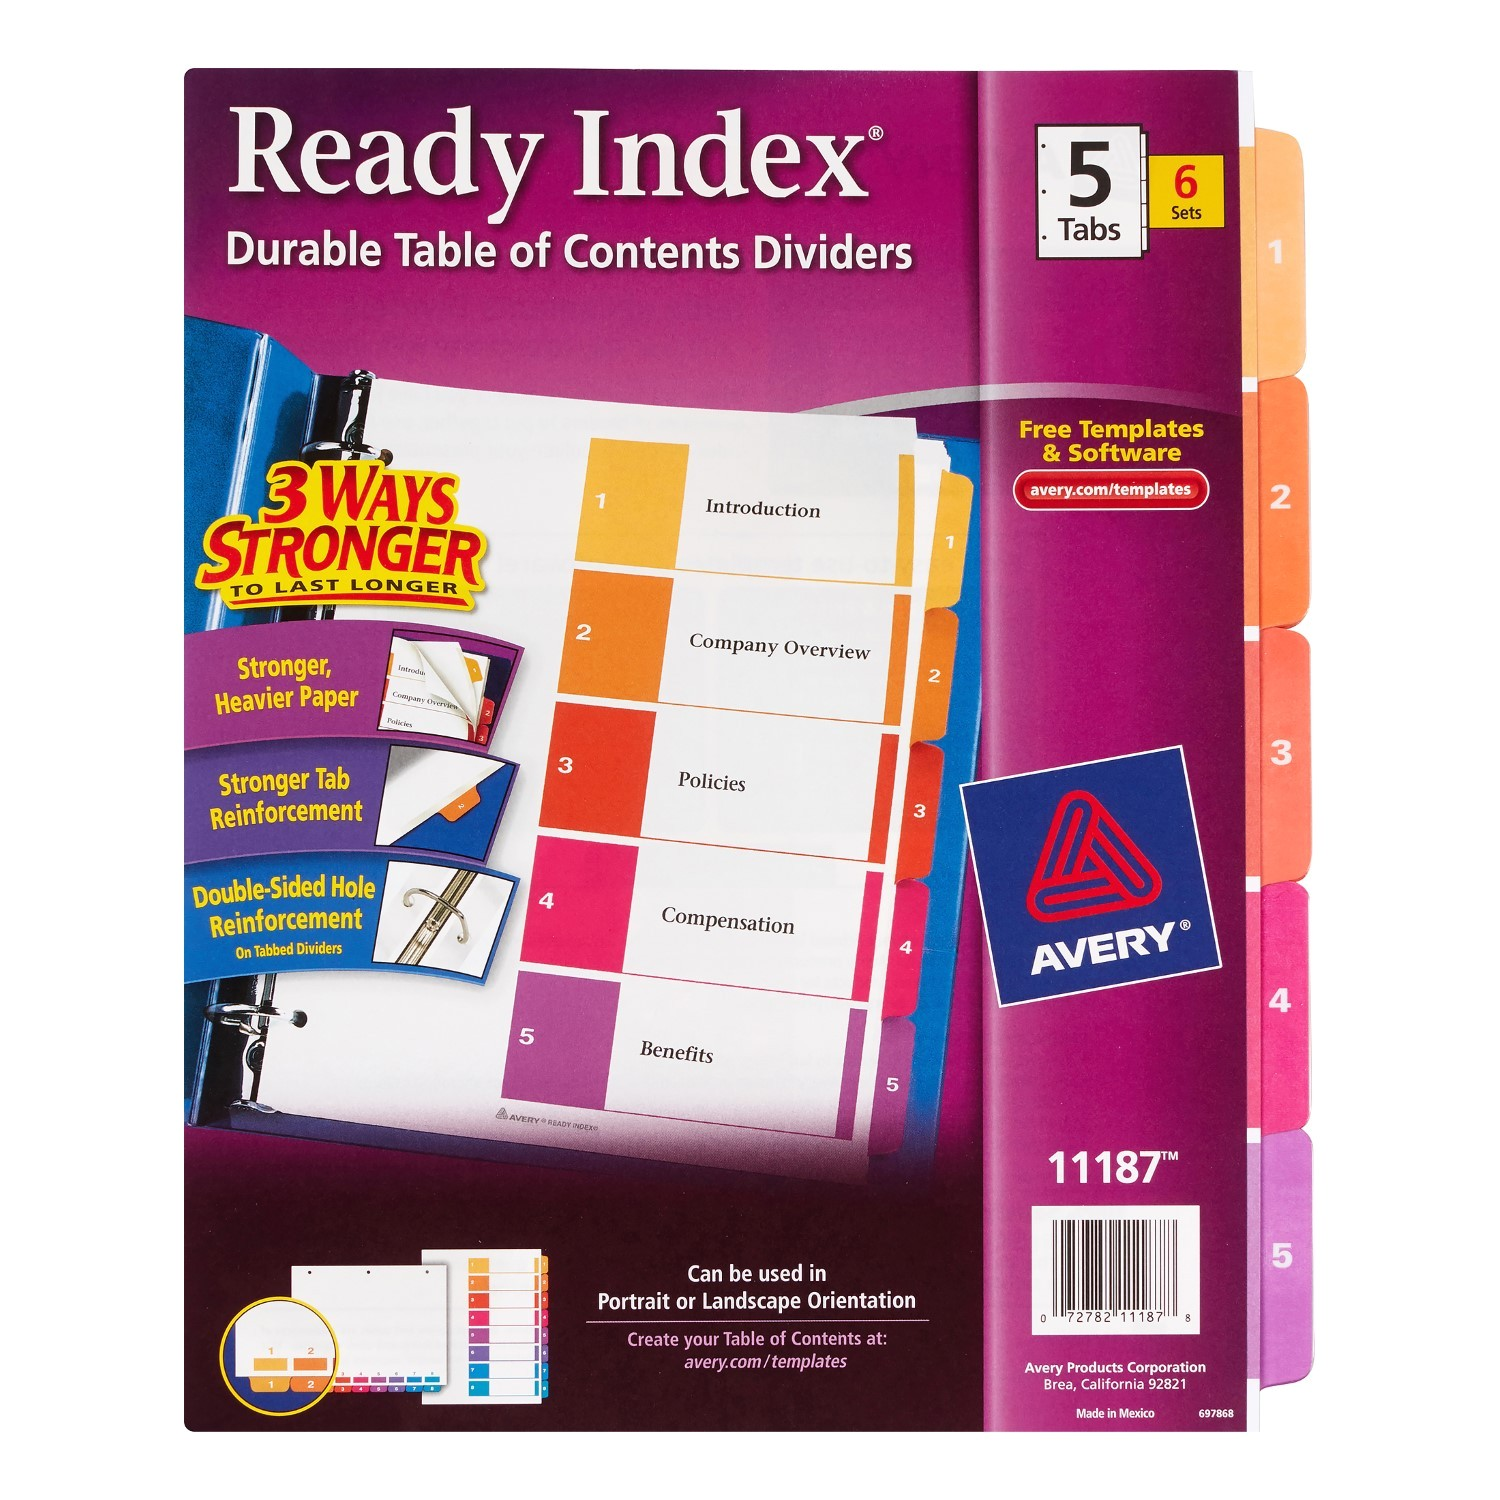 Avery Ready Index 8 Tab Color Template Avery Ready Index Table Of Contents Dividers assorted